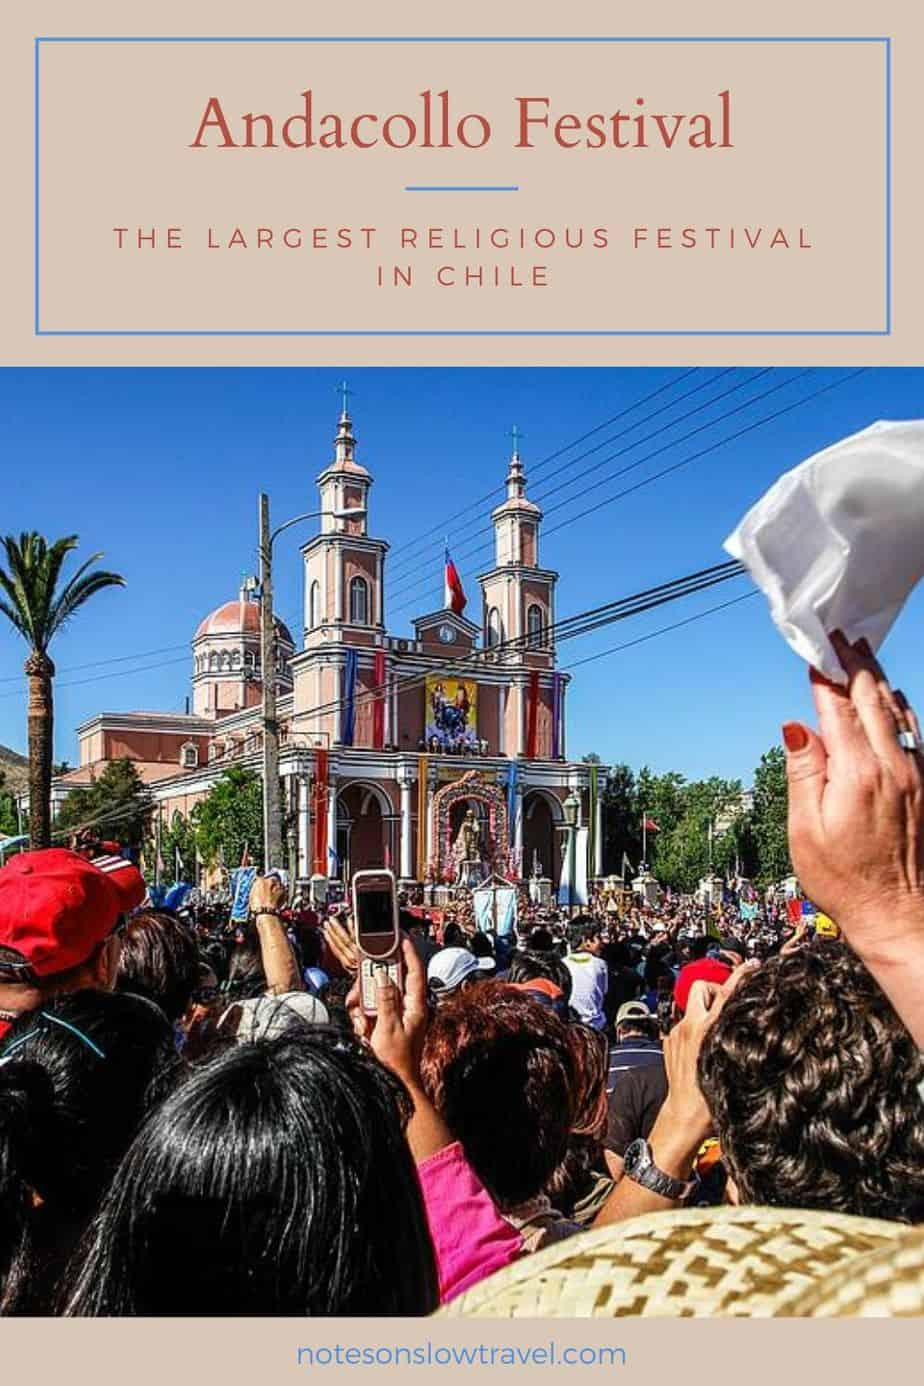 Andacollo Festival in Chile